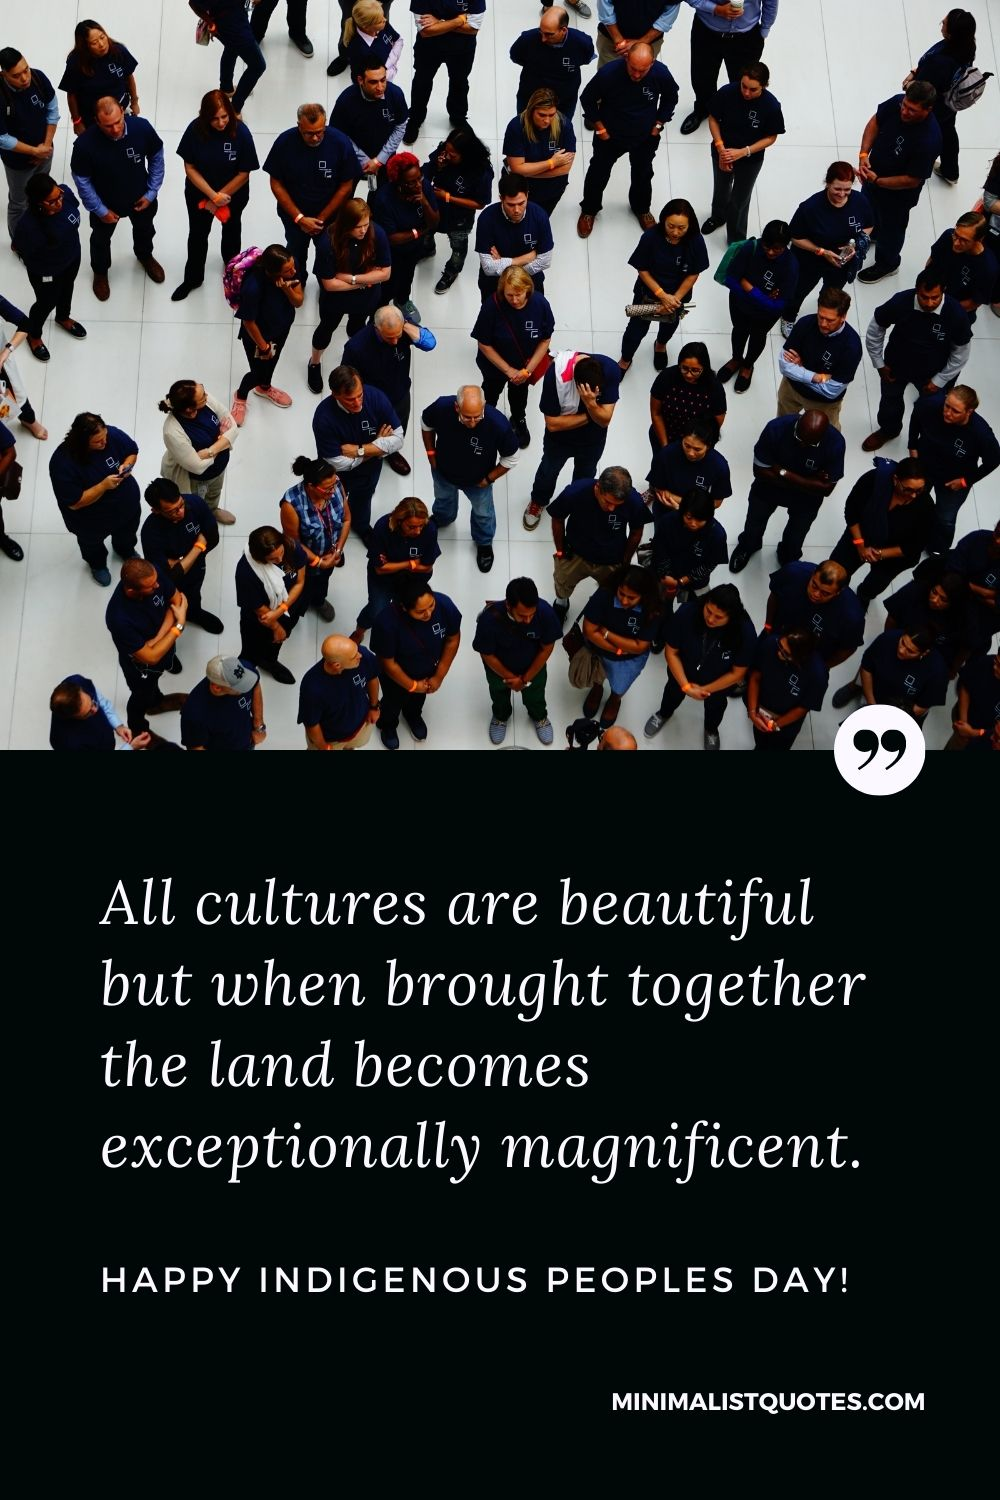 Indigenous People's Day Quote, Wish & Message: All cultures are beautiful but when brought together the land becomes exceptionally magnificent.